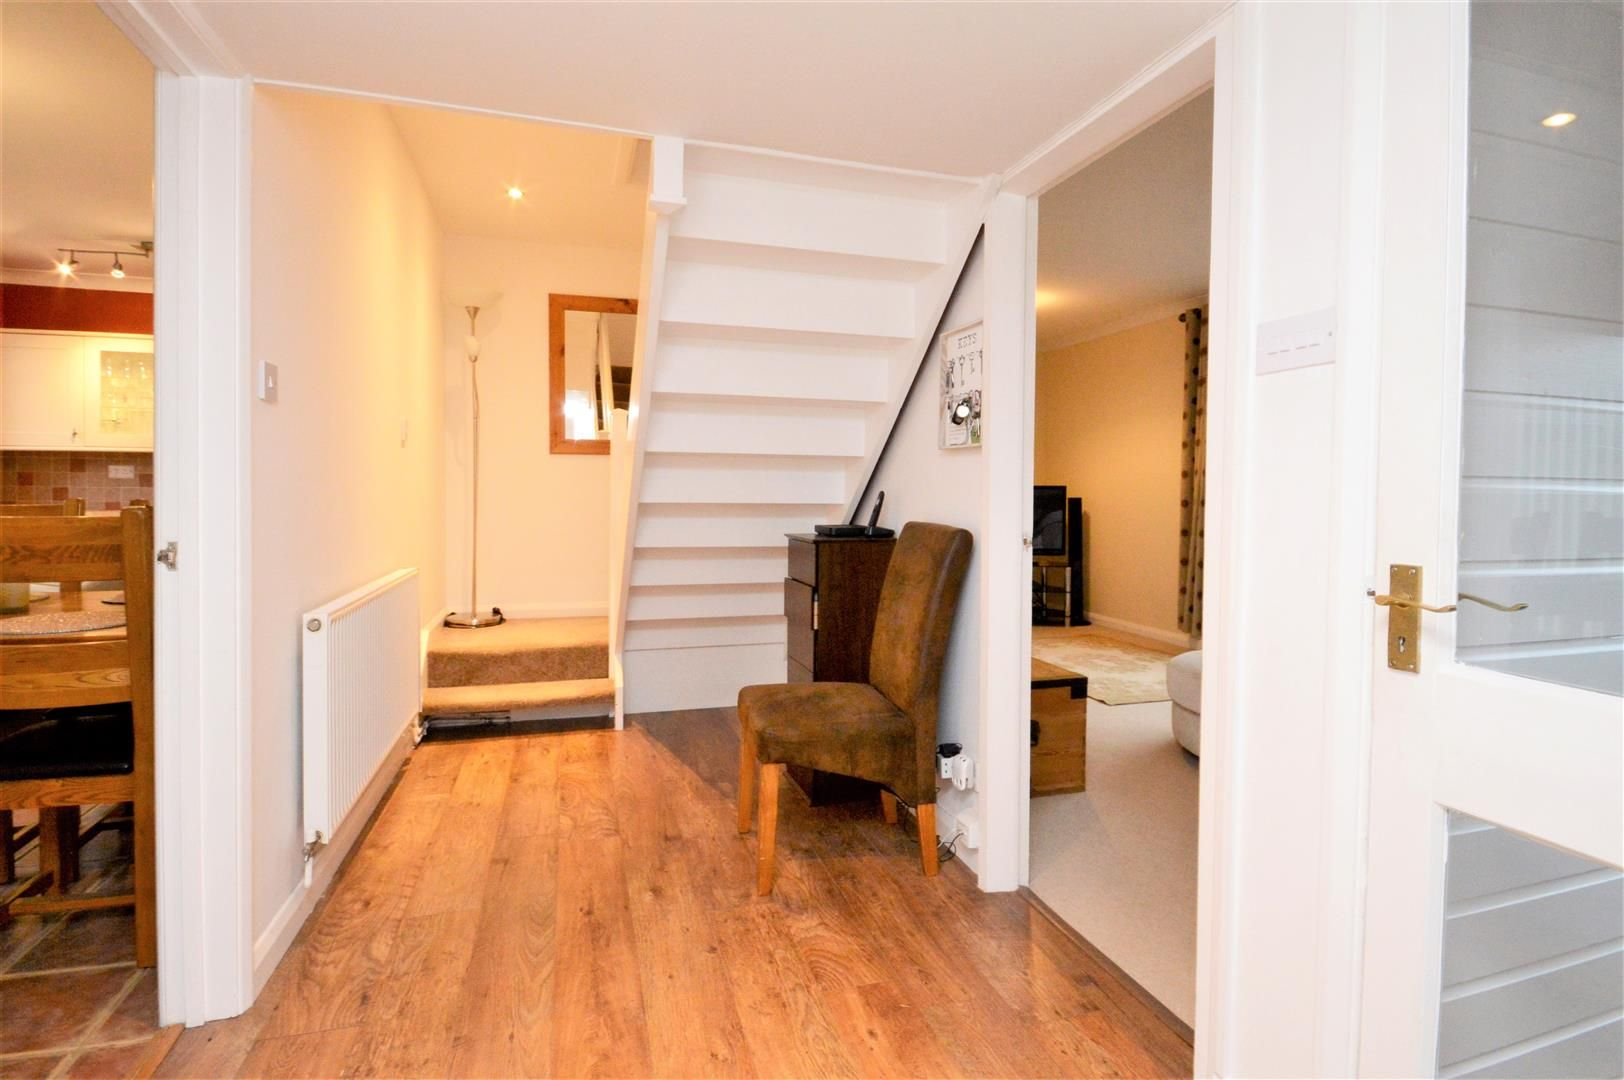 4 bed detached for sale in Marden 6